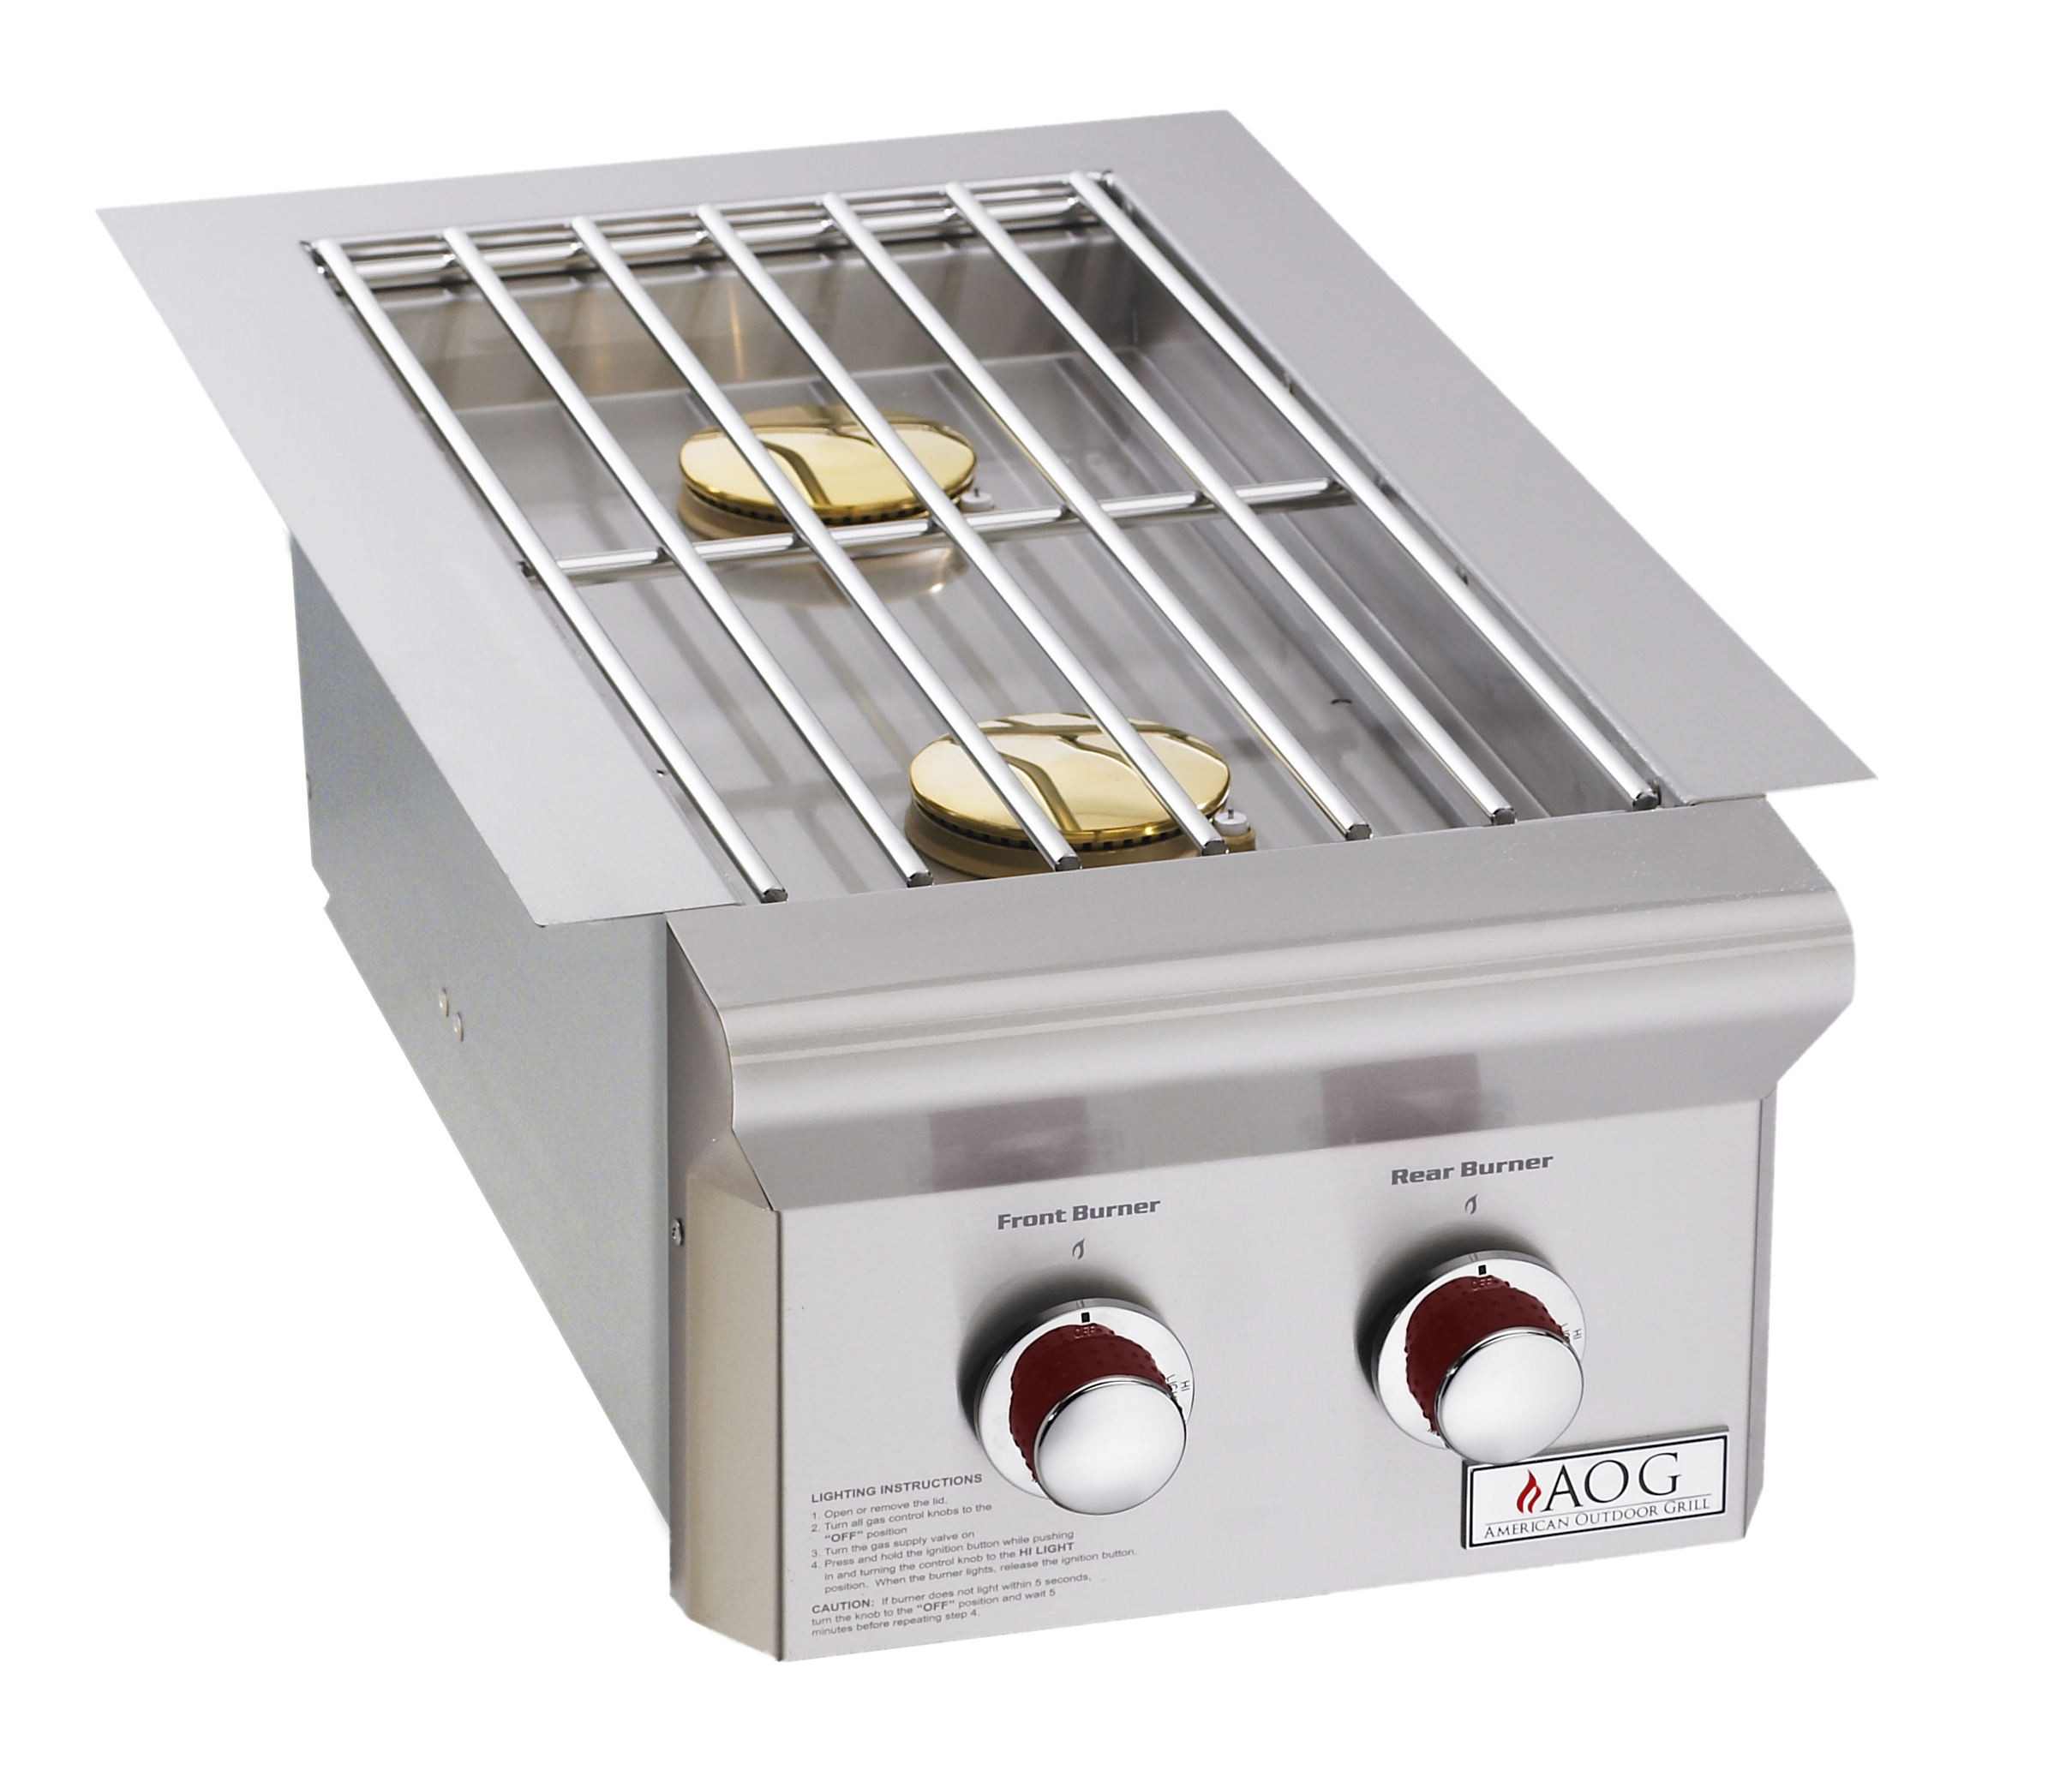 aog-3282t-built-in-double-side-burner-t-series.jpg